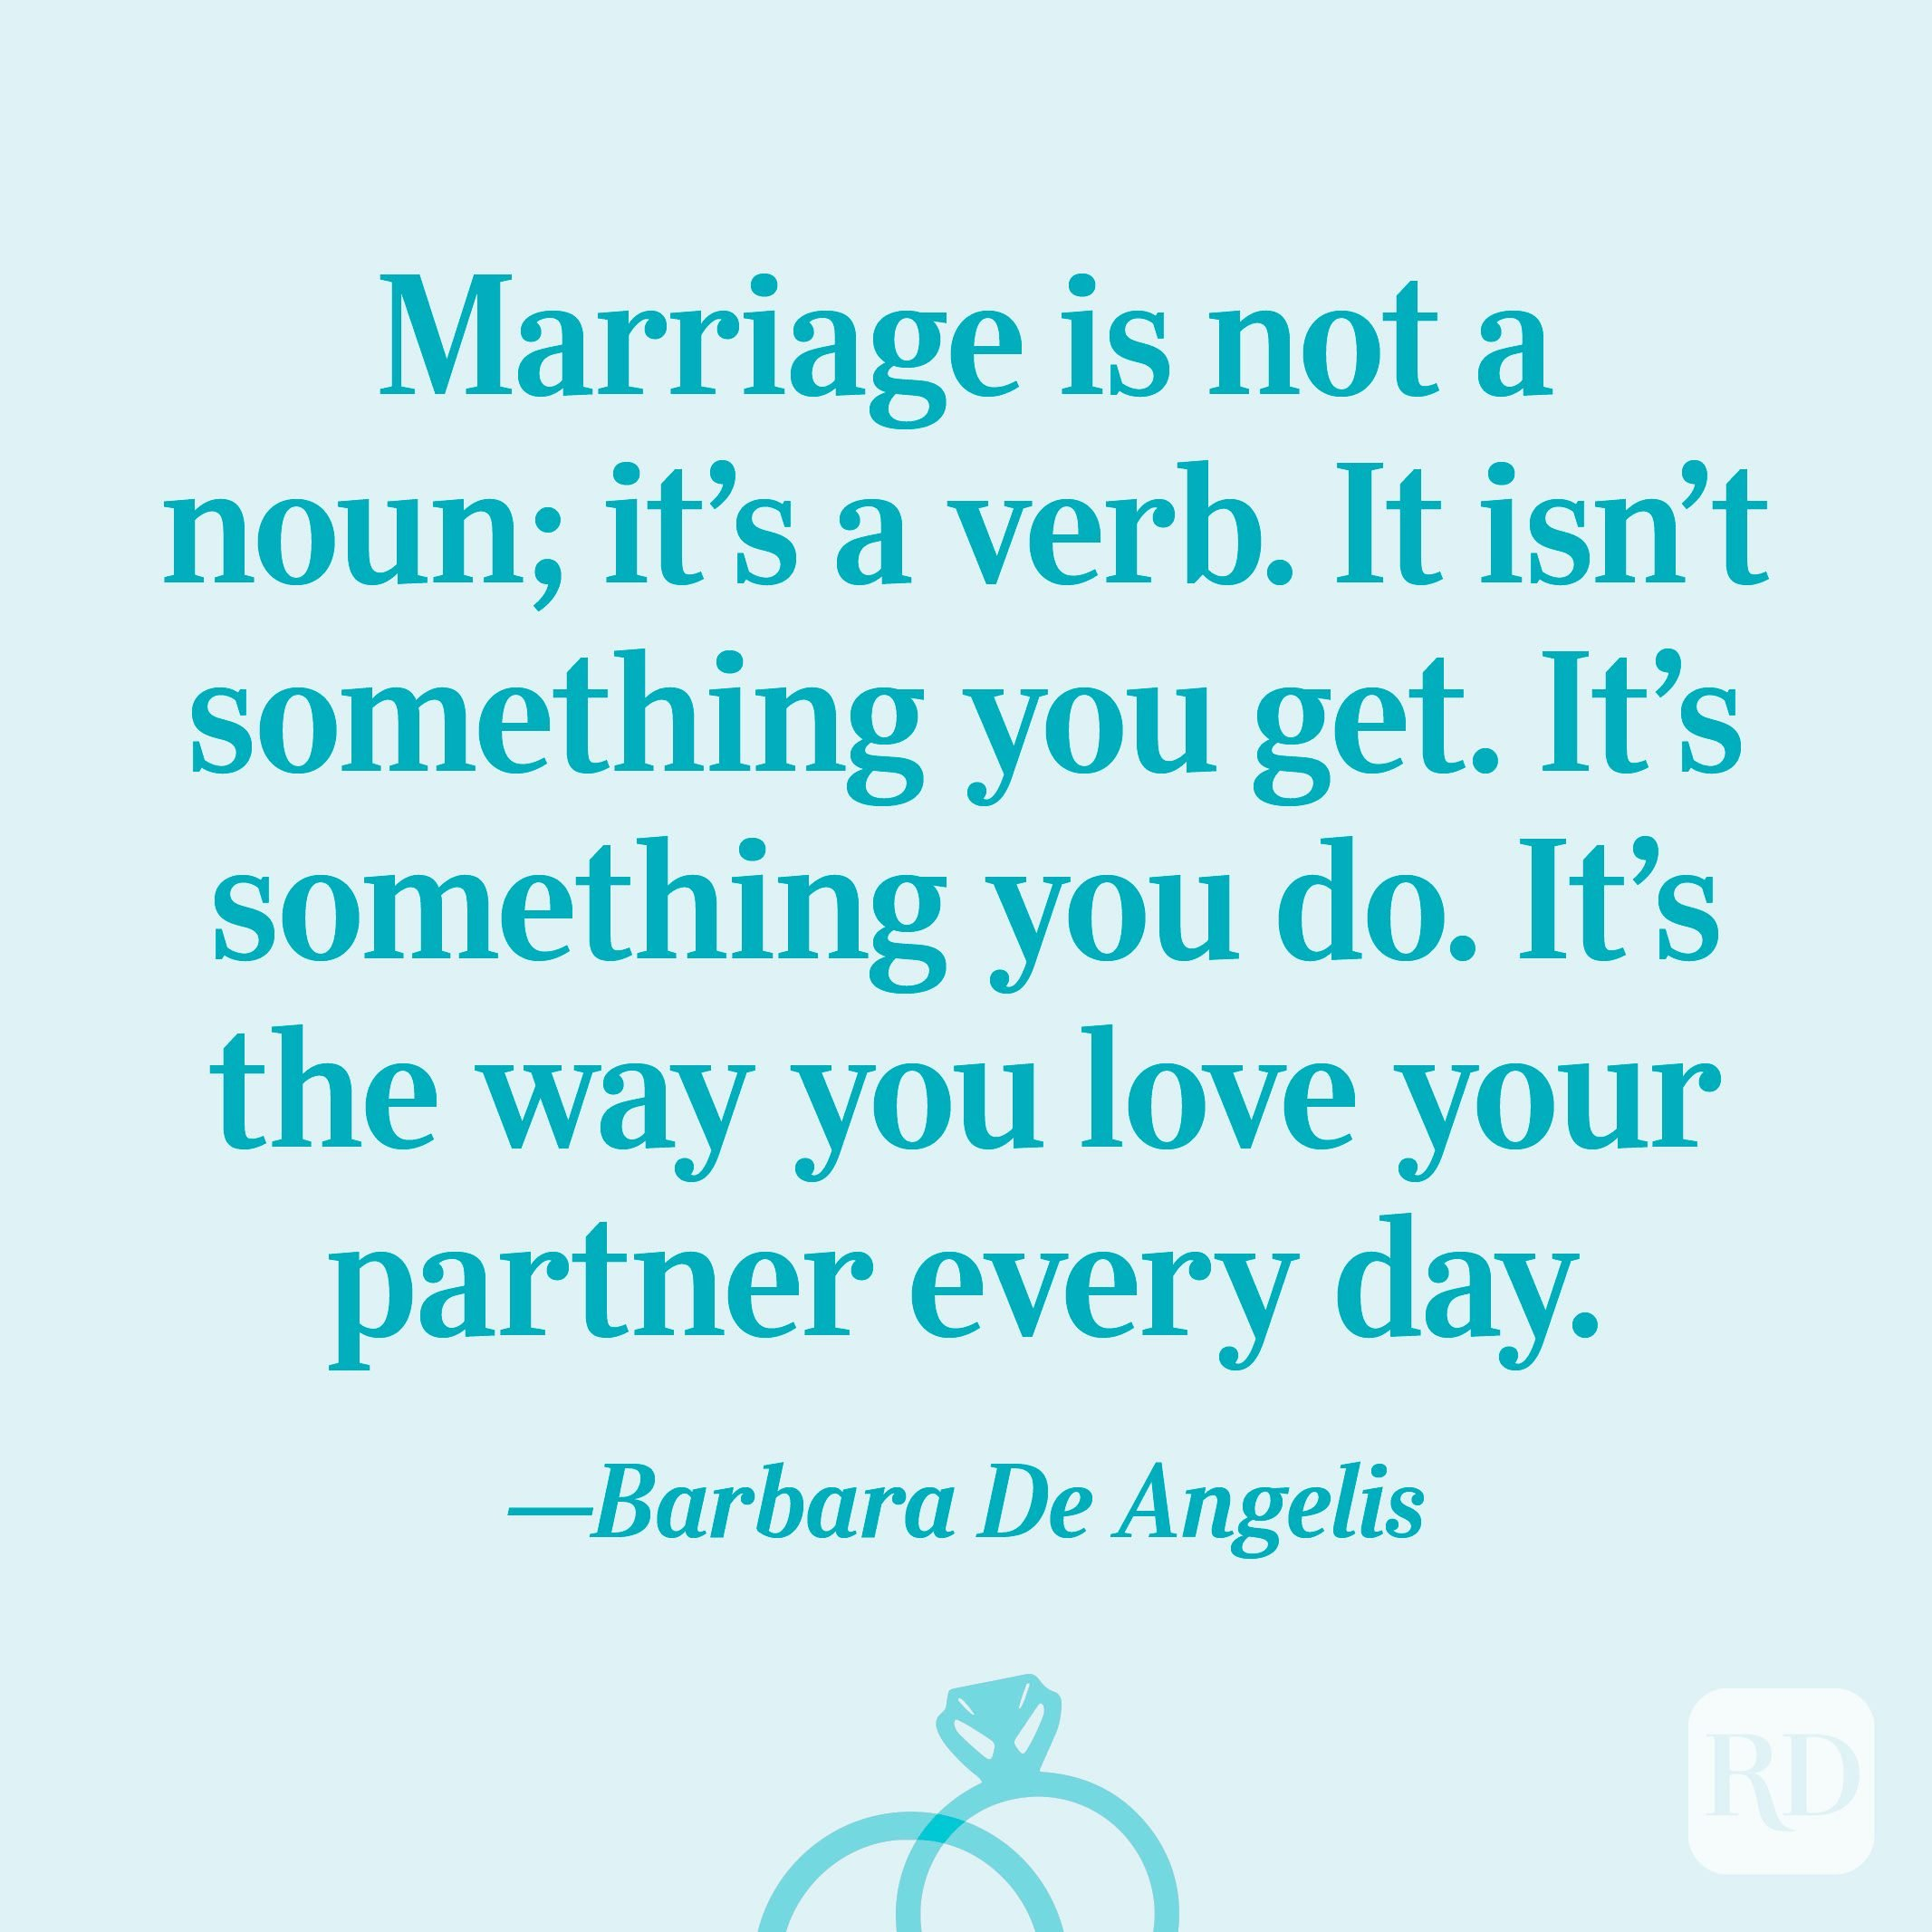 """Marriage is not a noun; it's a verb. It isn't something you get. It's something you do. It's the way you love your partner every day.""—Barbara De Angelis"